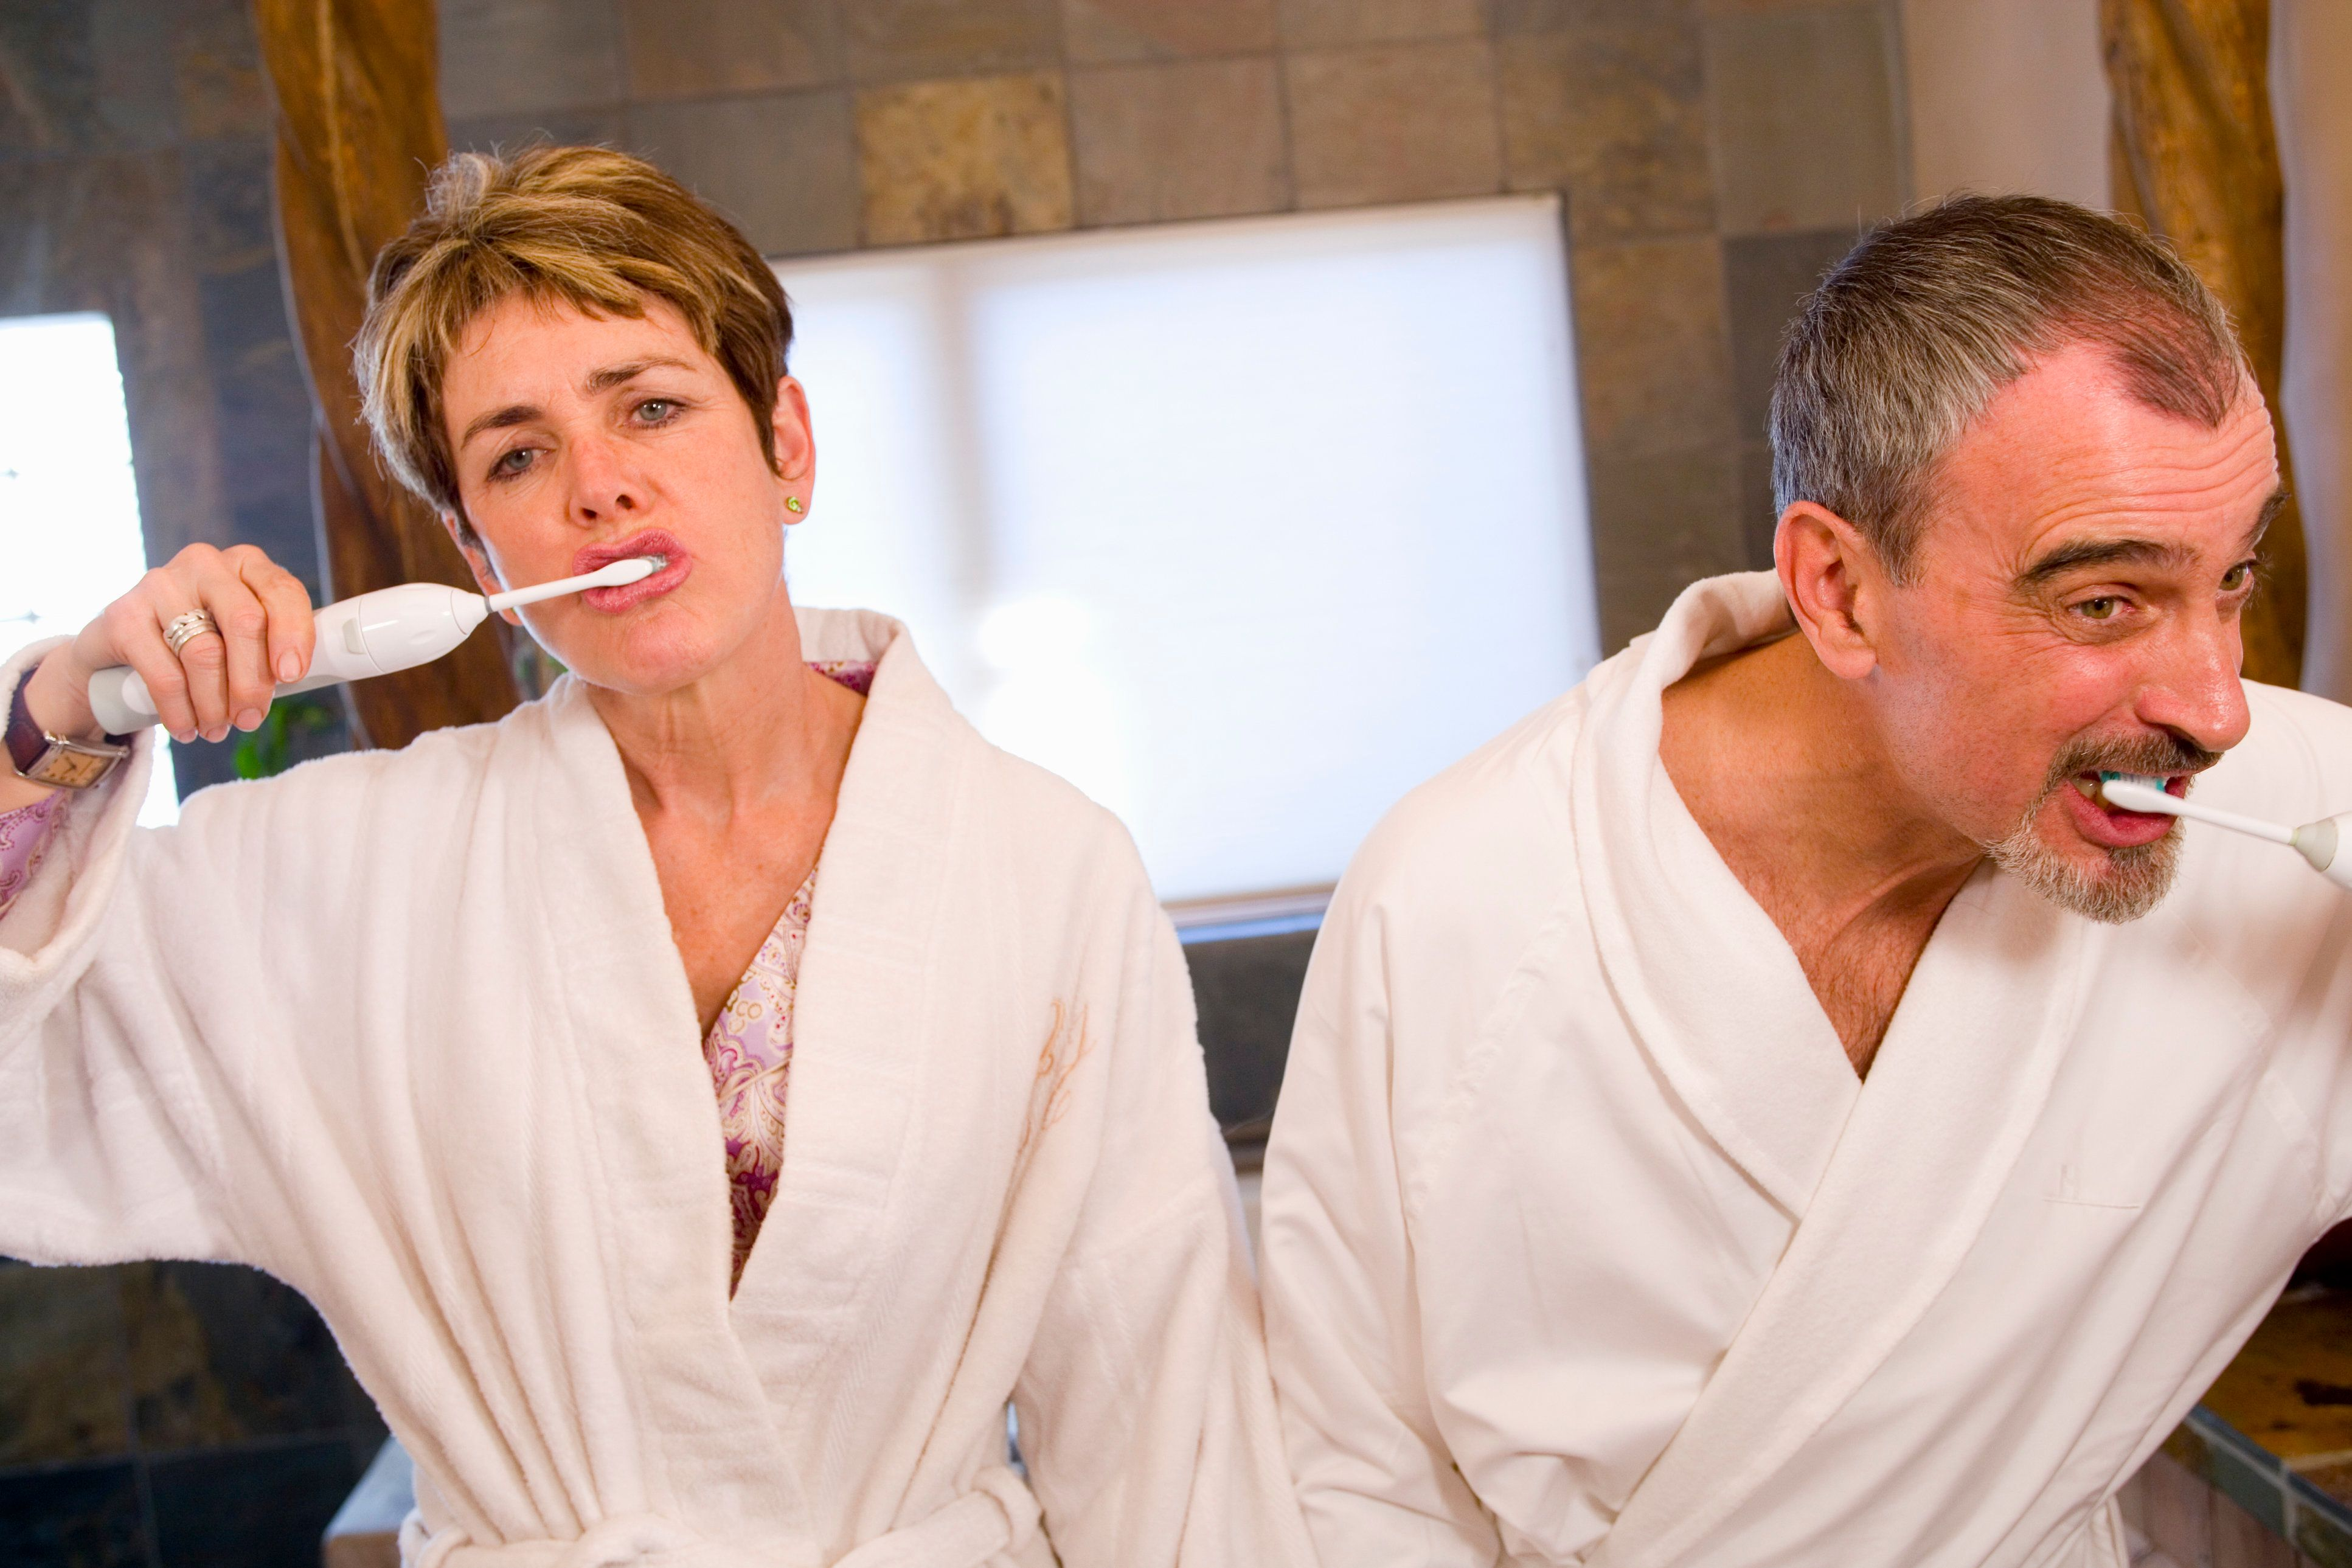 Mature couple brushing teeth together in bathroom